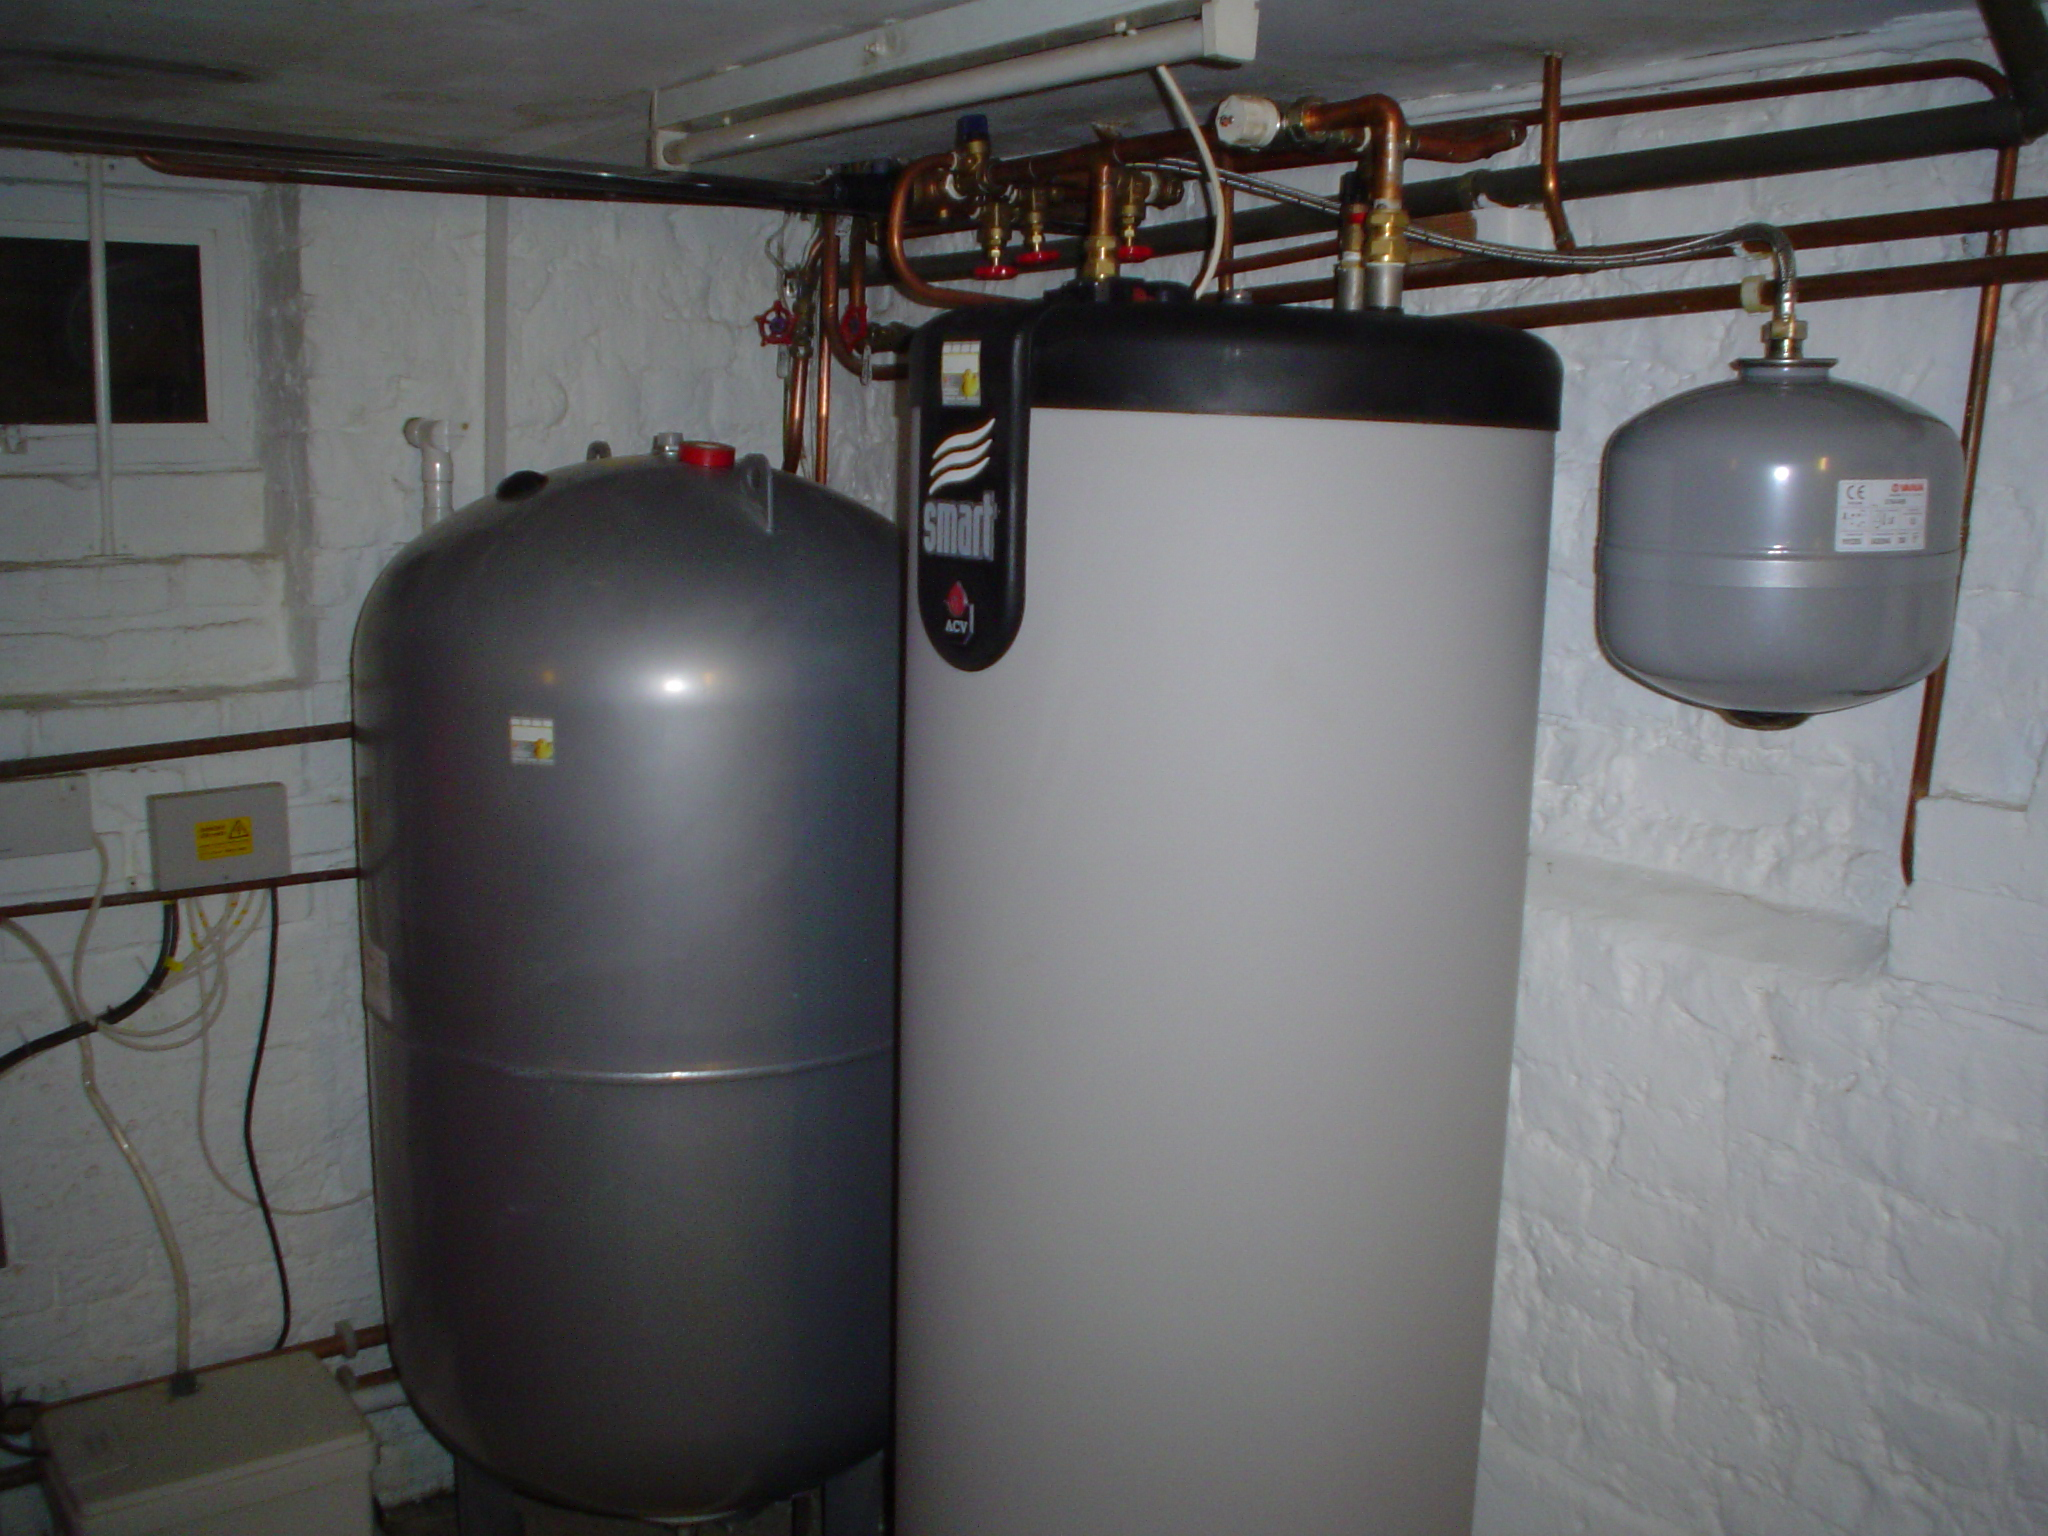 Replacement water system in cellar for multi bathroom residence ...